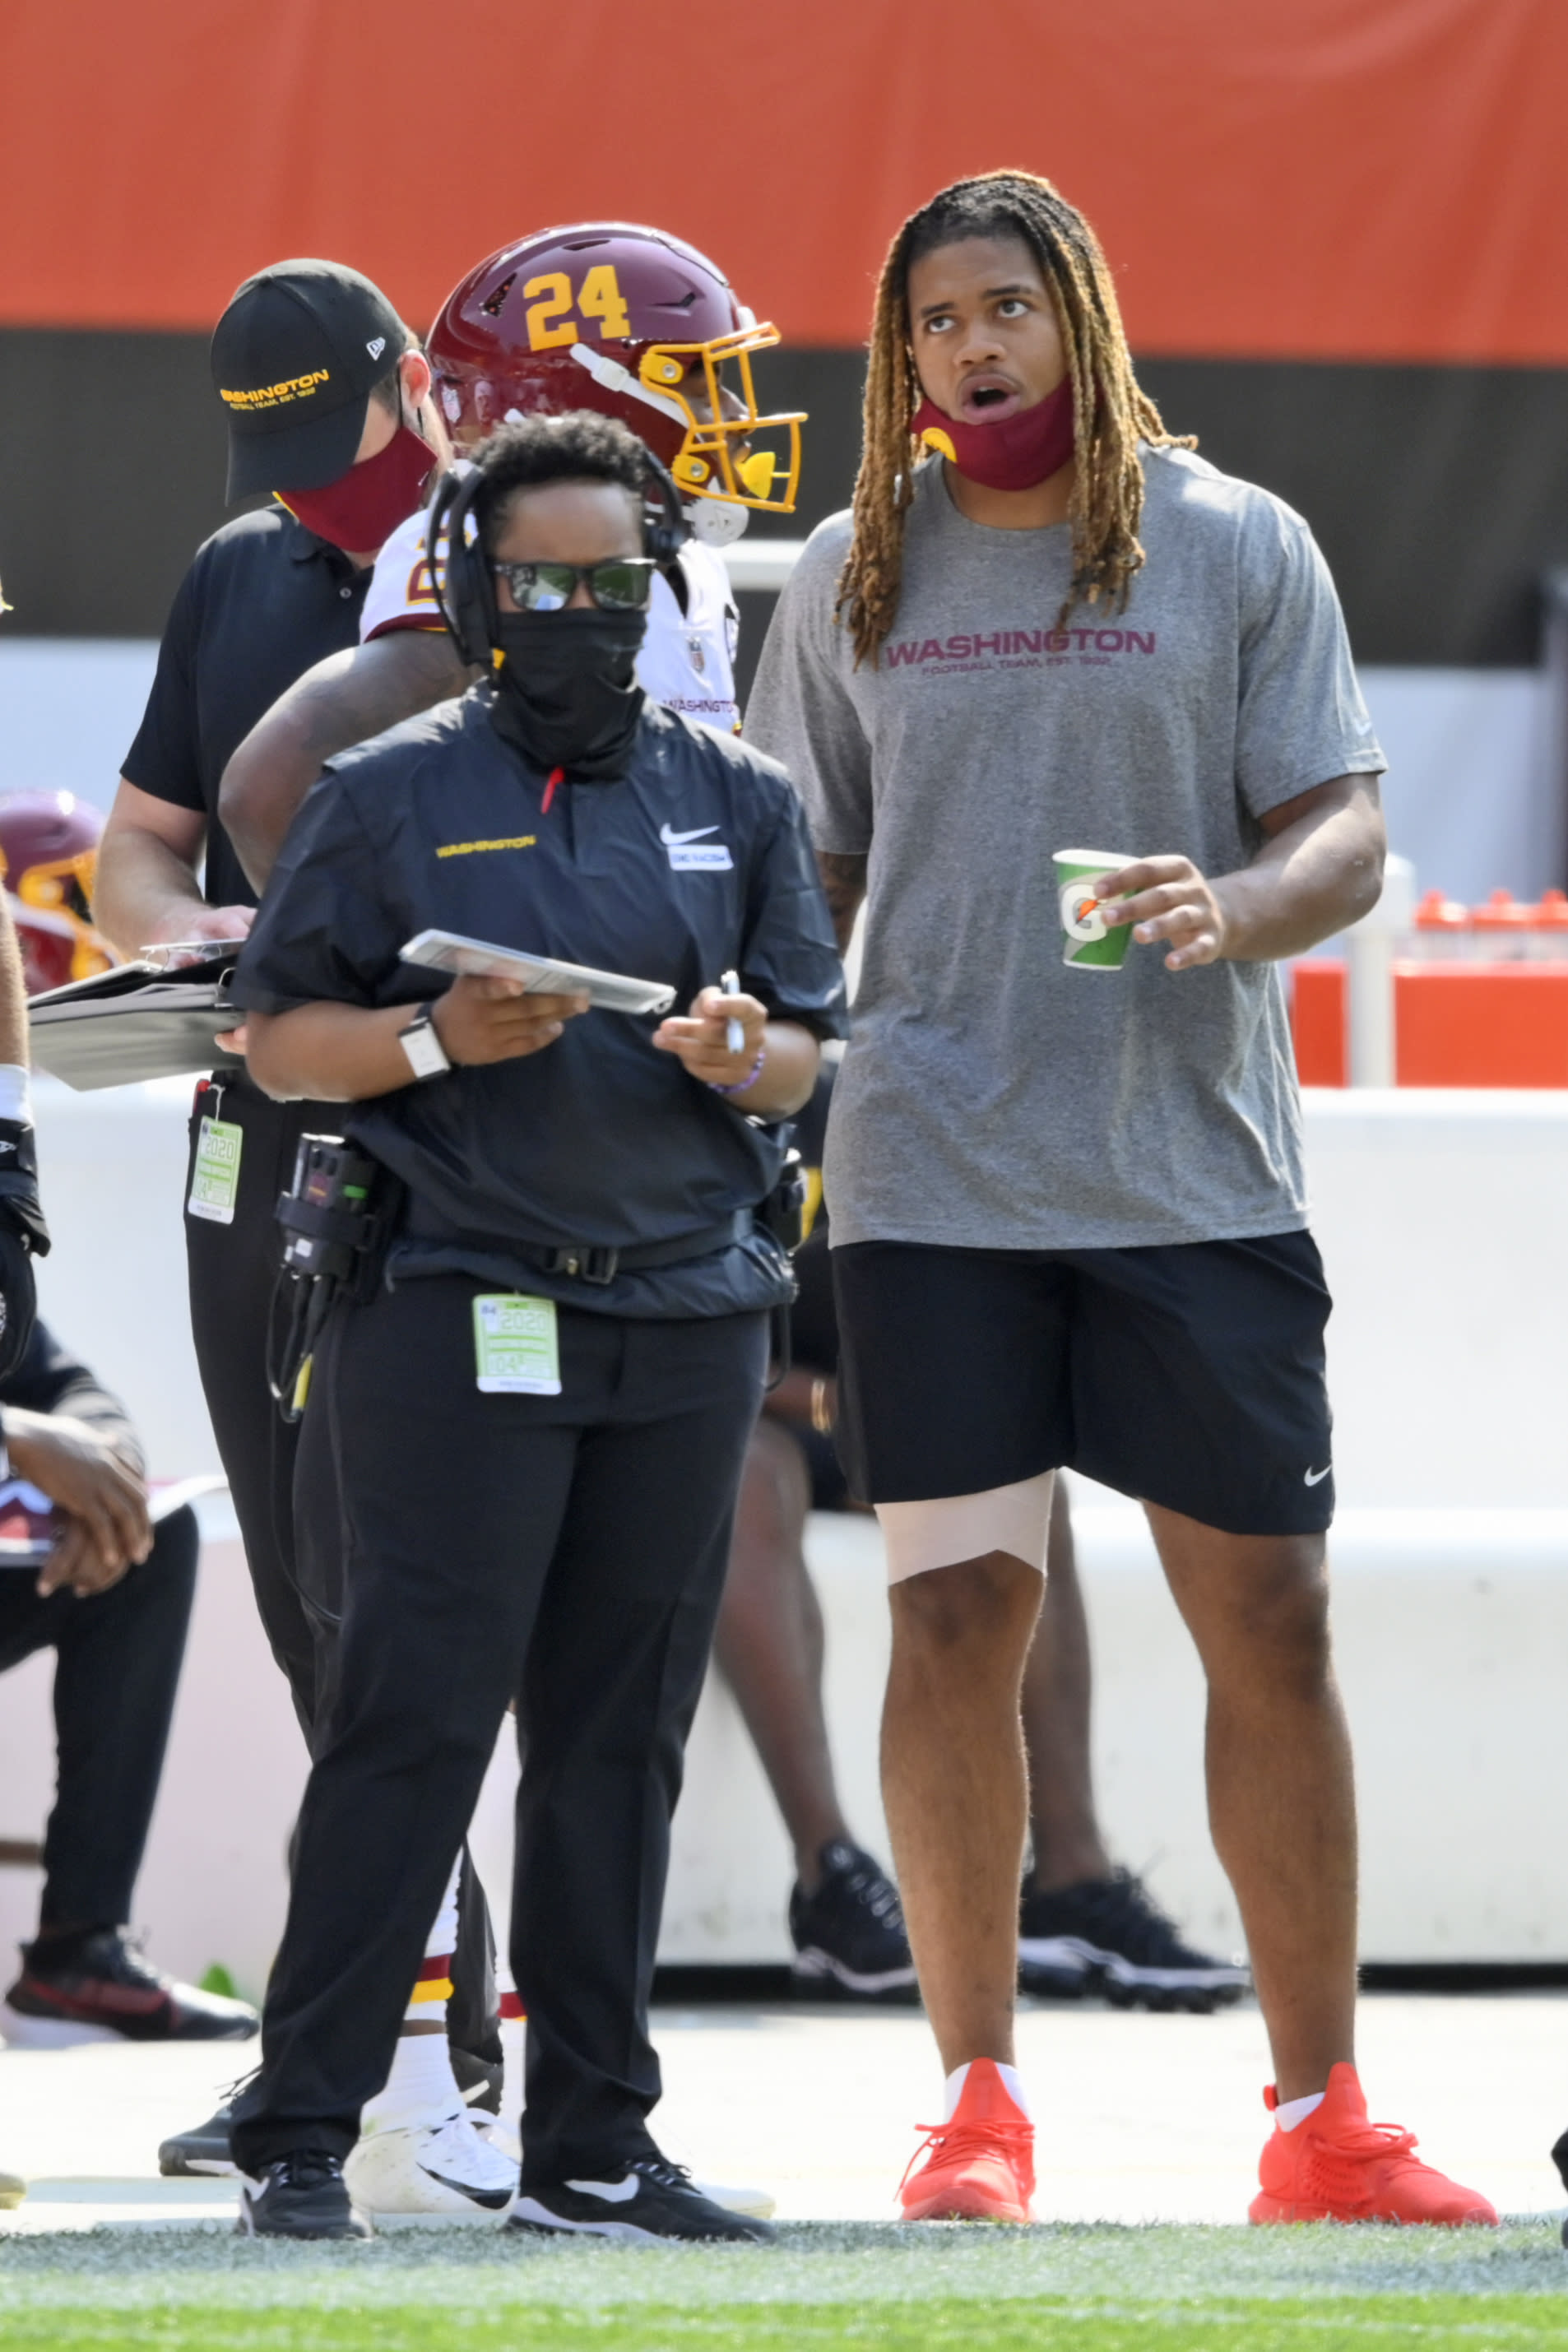 Washington Football Team defensive end Chase Young, right, watches form the sidelines during the second half of an NFL football game against the Cleveland Browns, Sunday, Sept. 27, 2020, in Cleveland. (AP Photo/David Richard)